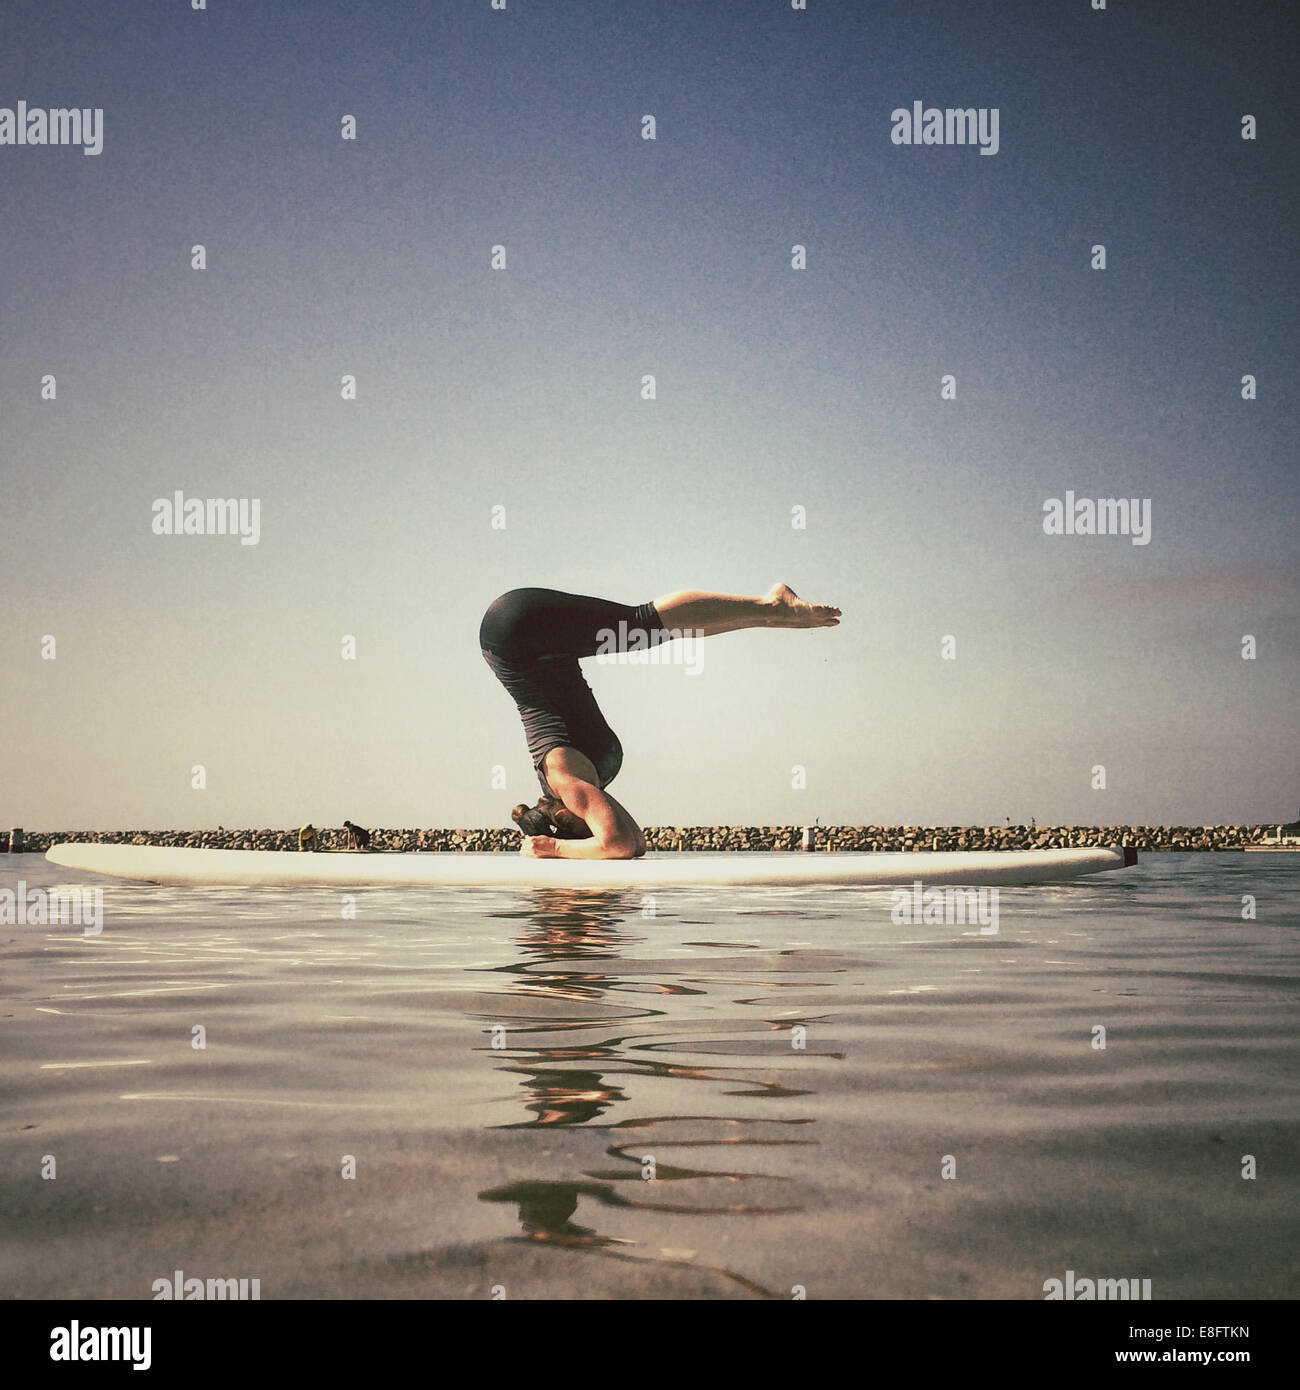 Woman doing yoga handstand on surfboard, california, america, USA - Stock Image